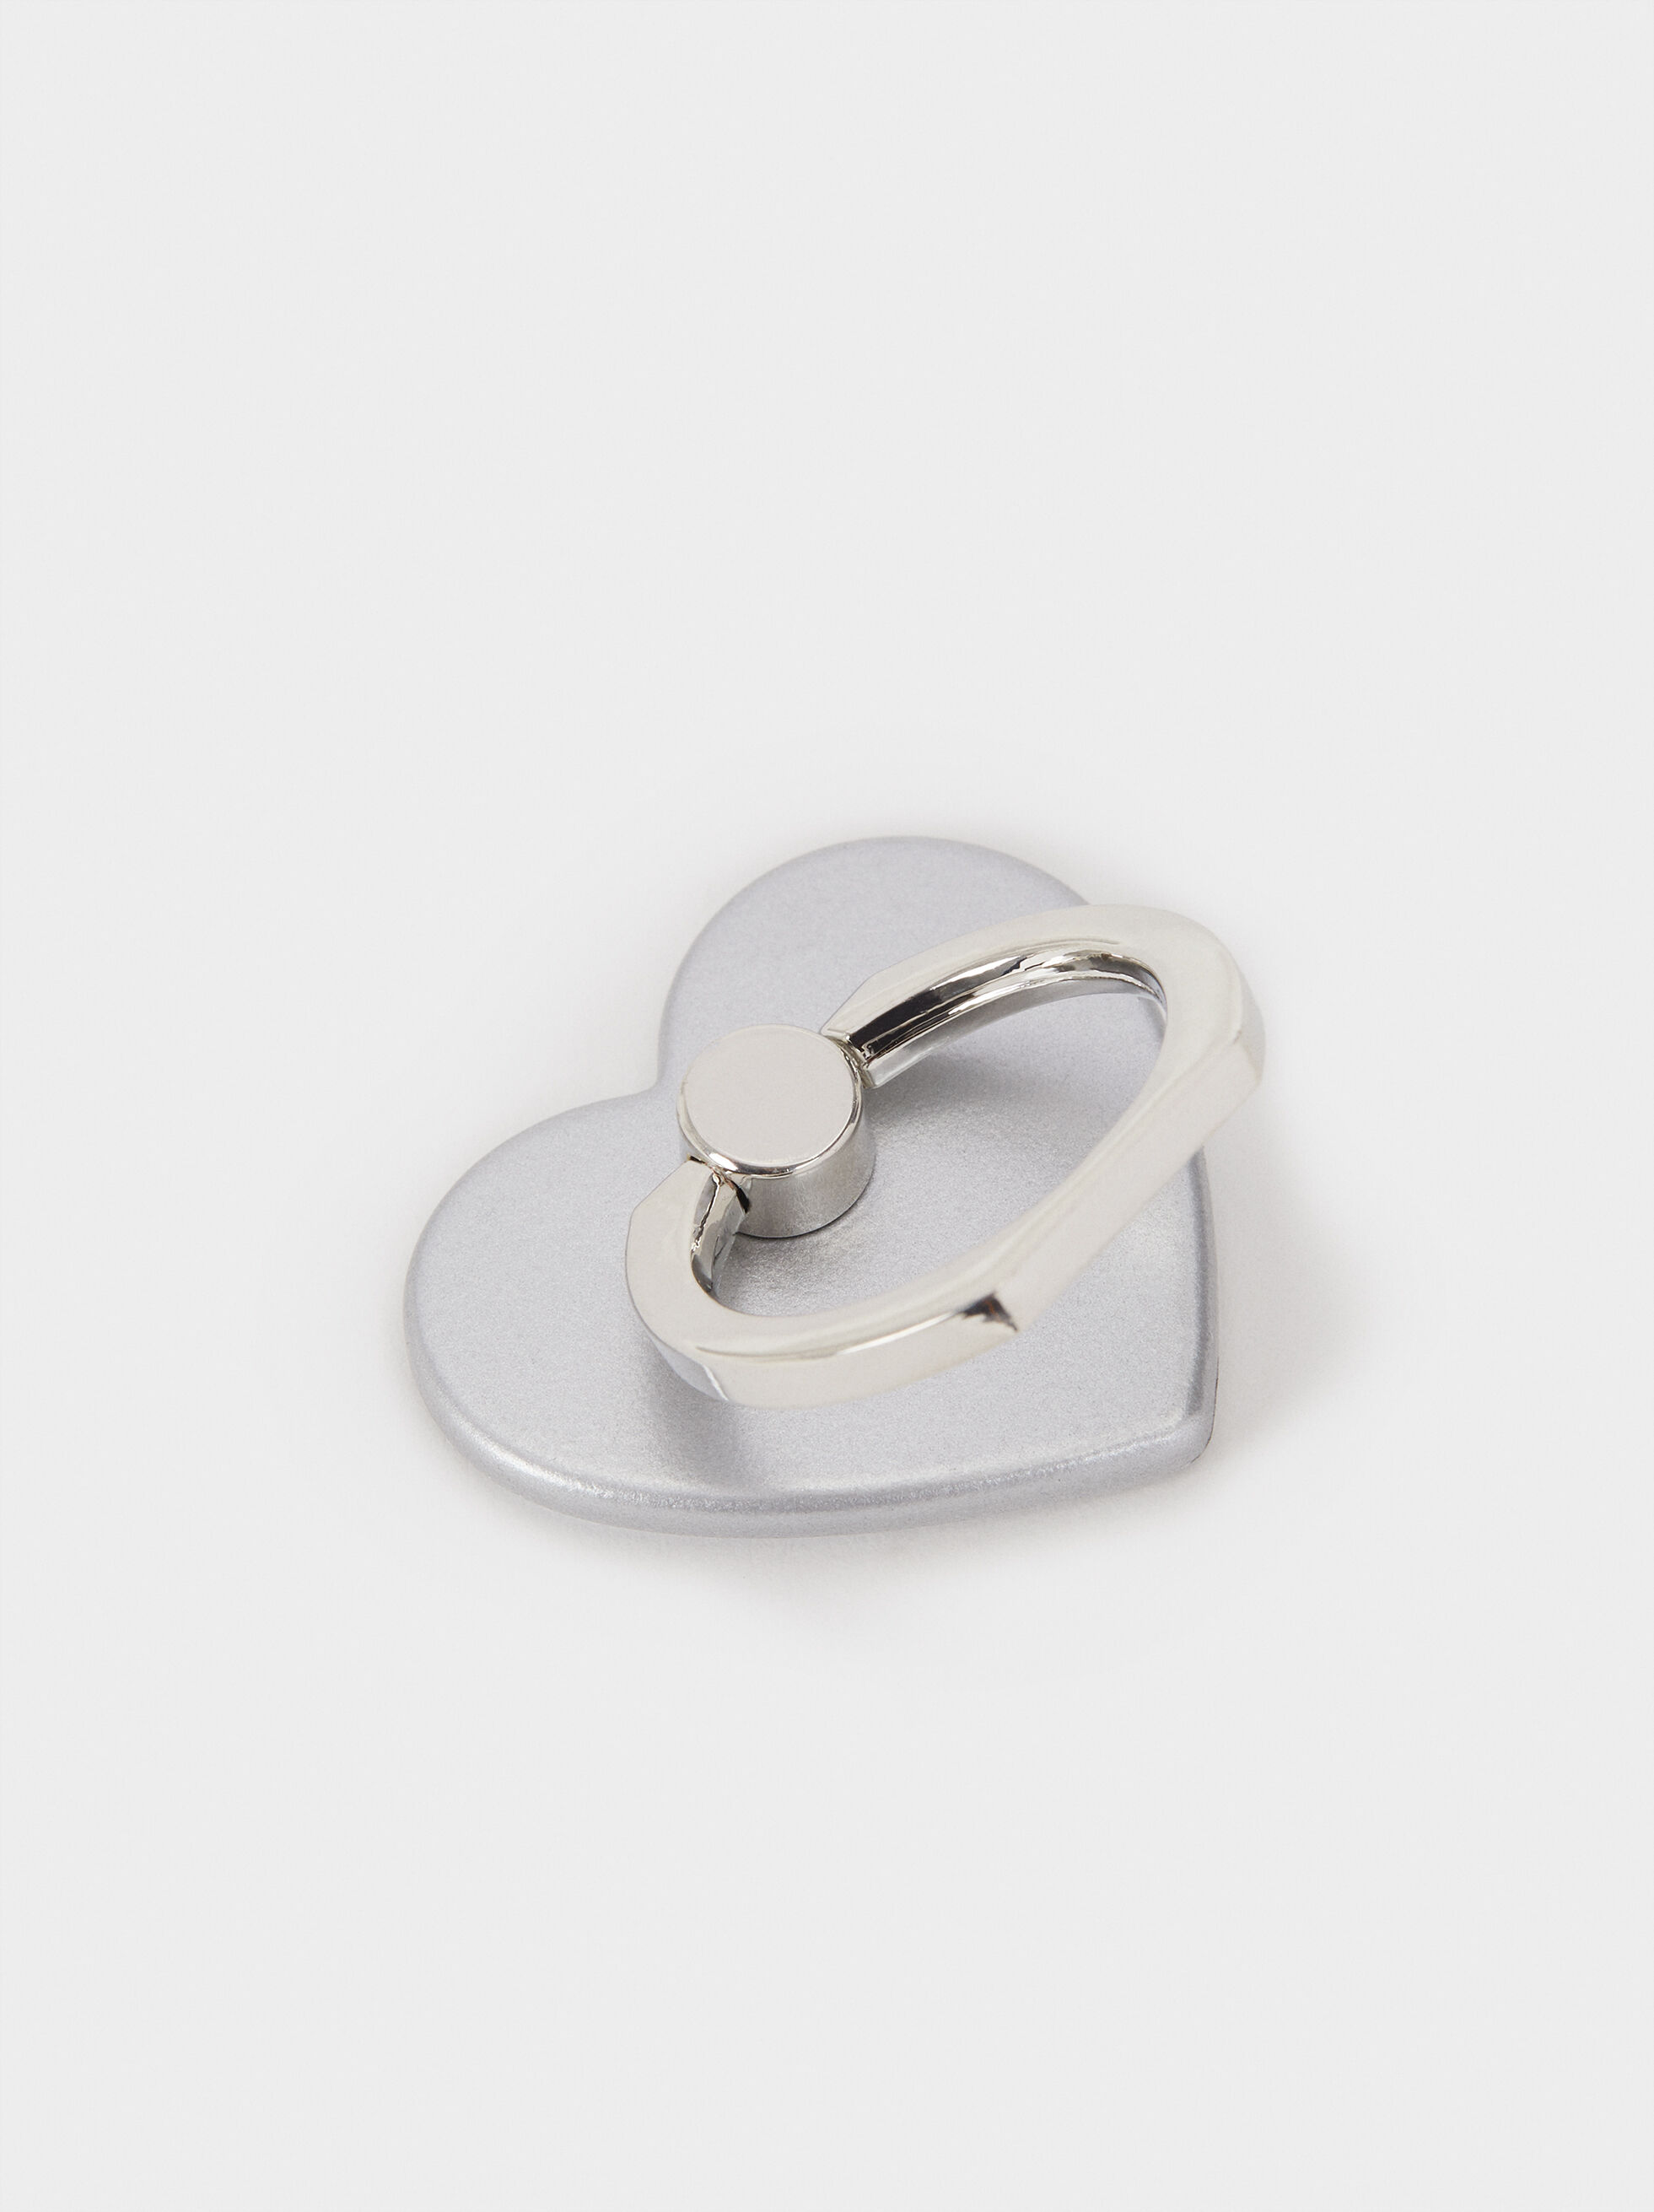 Mobile Phone Ring Stand, Silver, hi-res